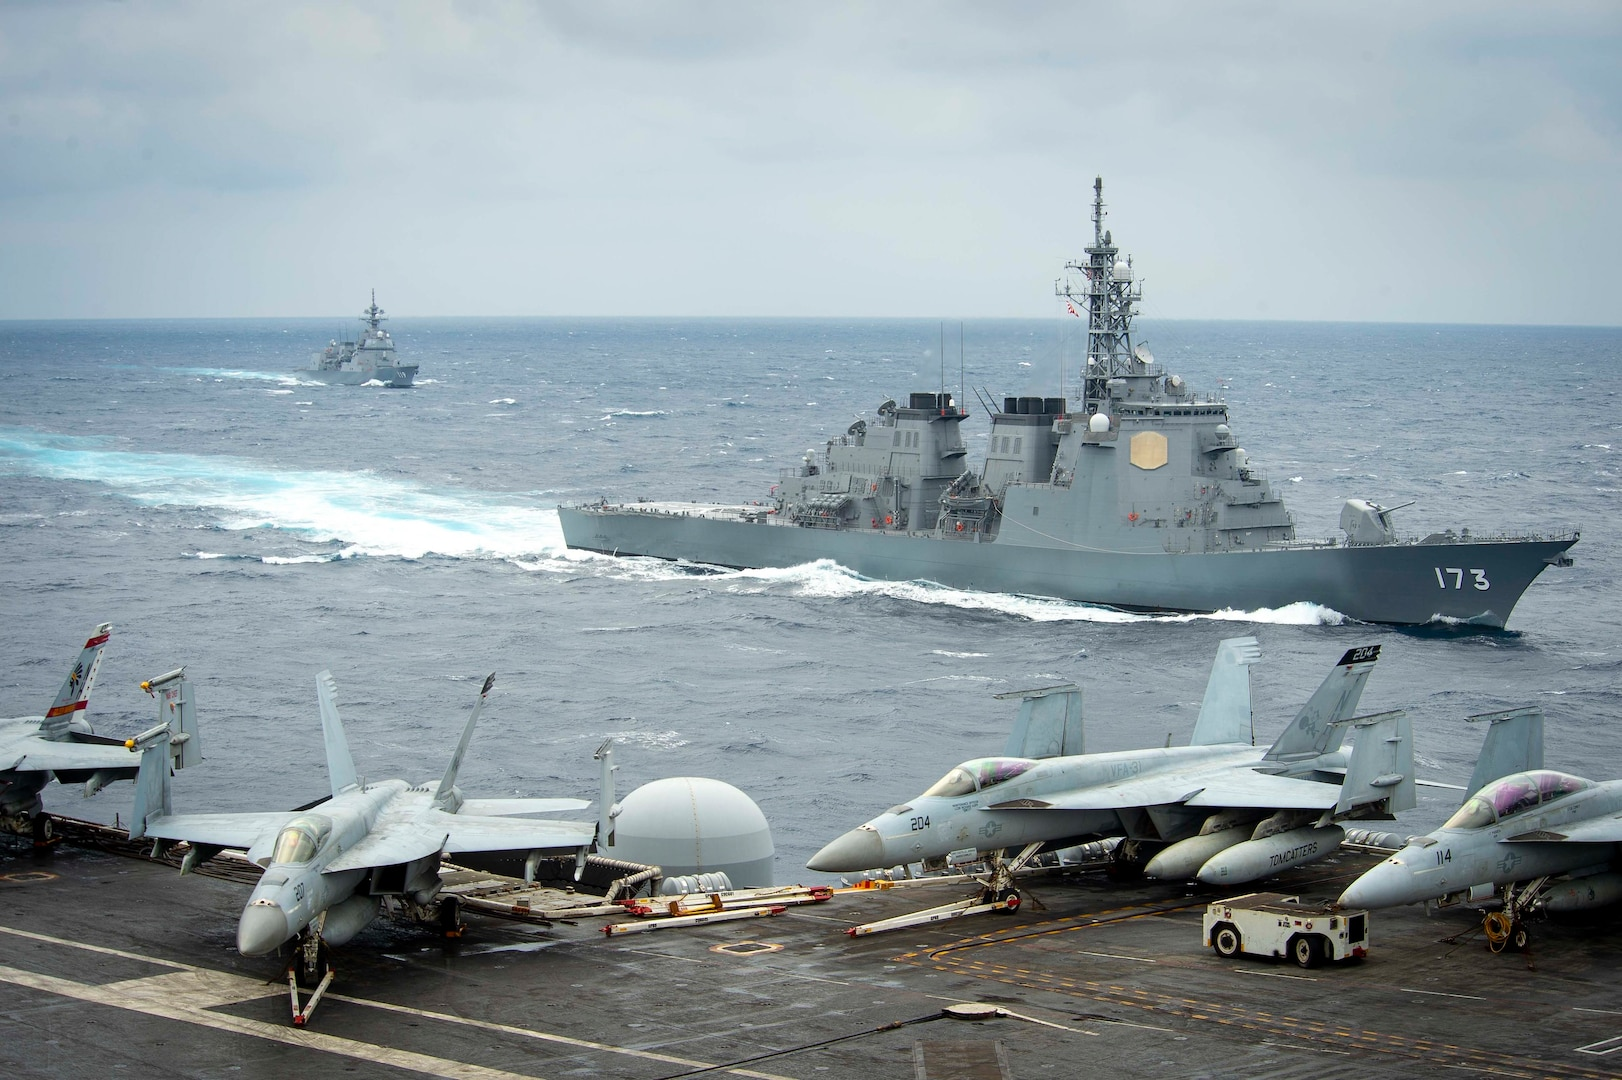 Theodore Roosevelt Carrier Strike Group Conducts Bilateral Exercise with Japan Maritime Self-Defense Force